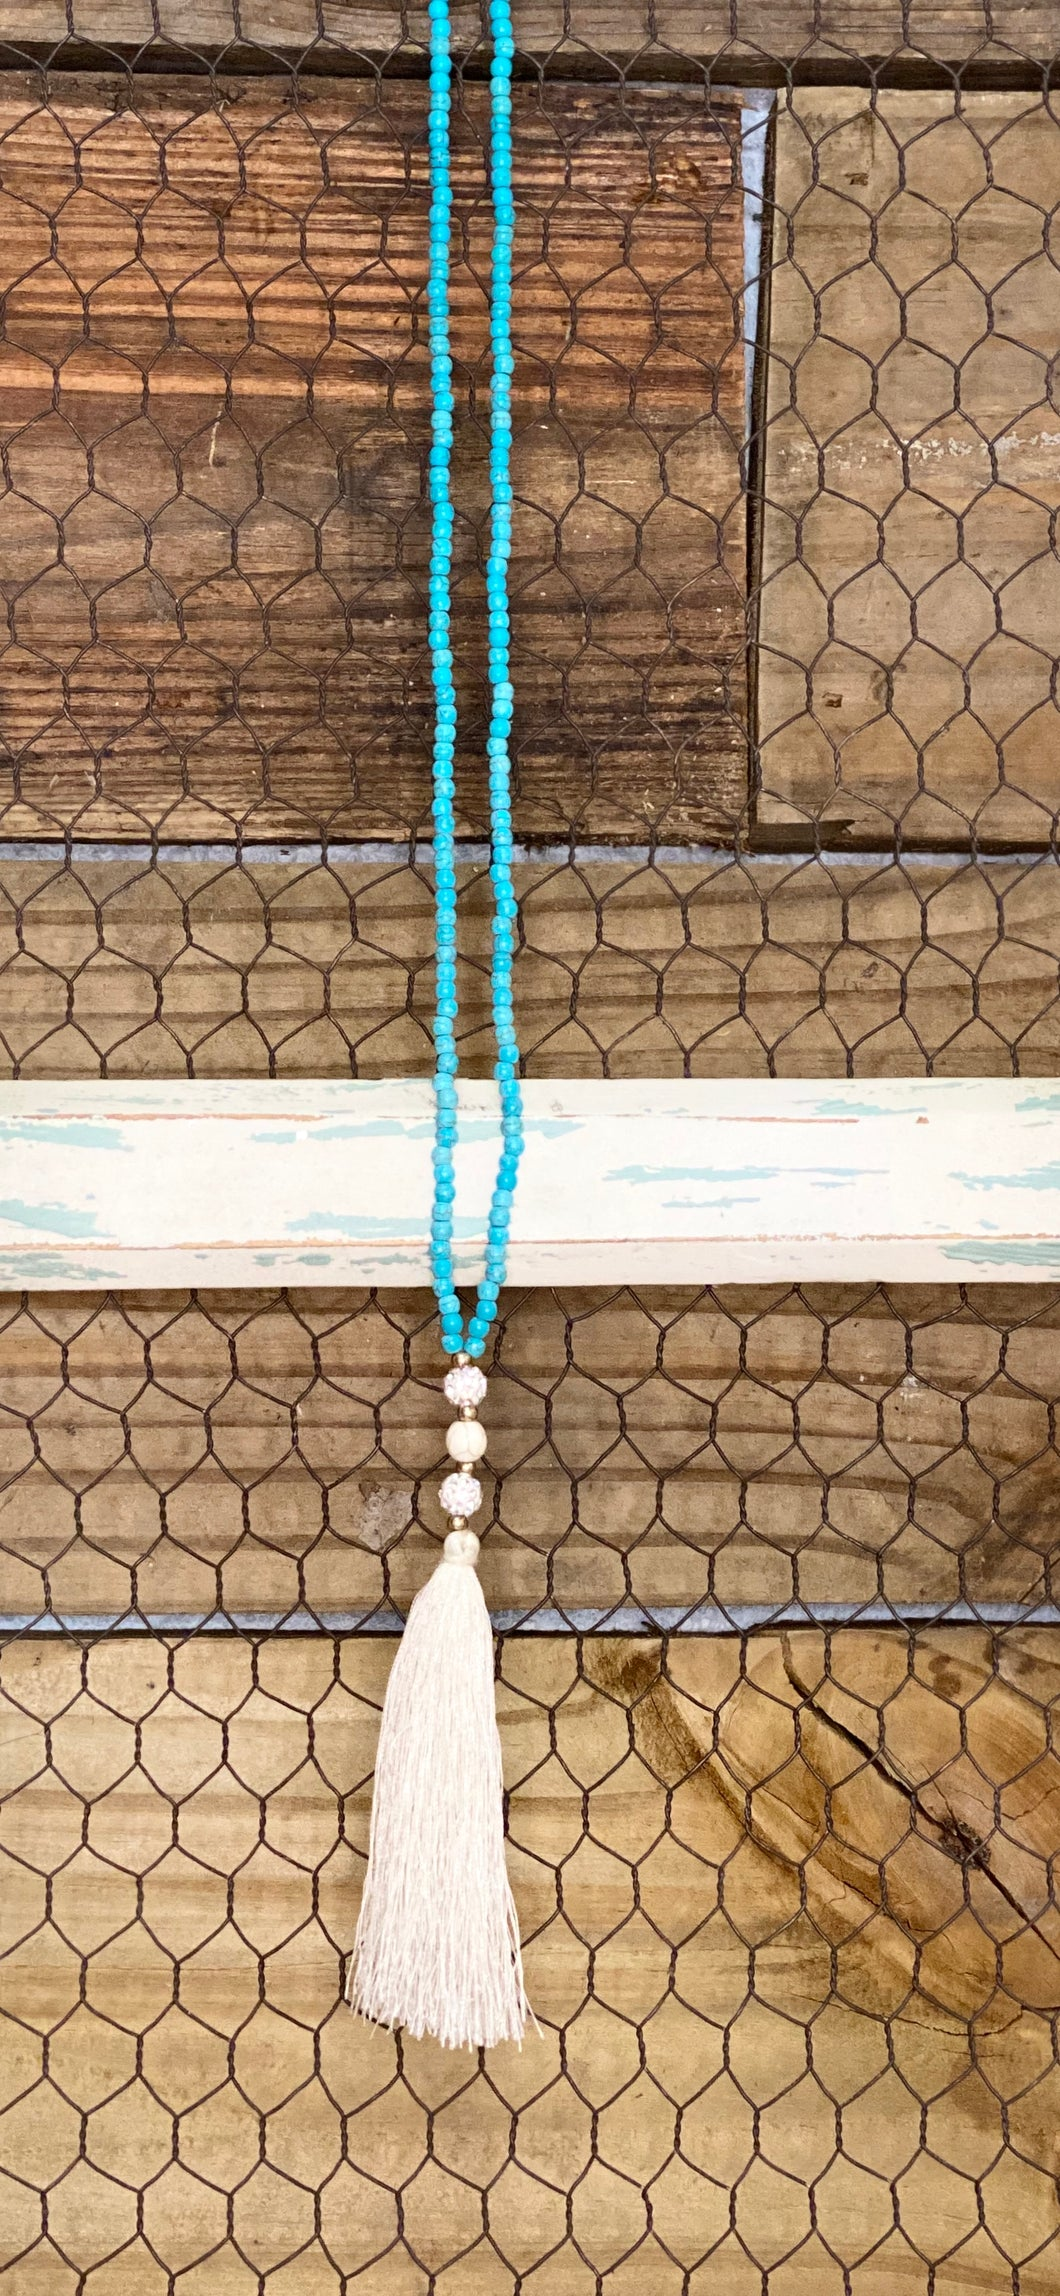 Turquoise & White Beads